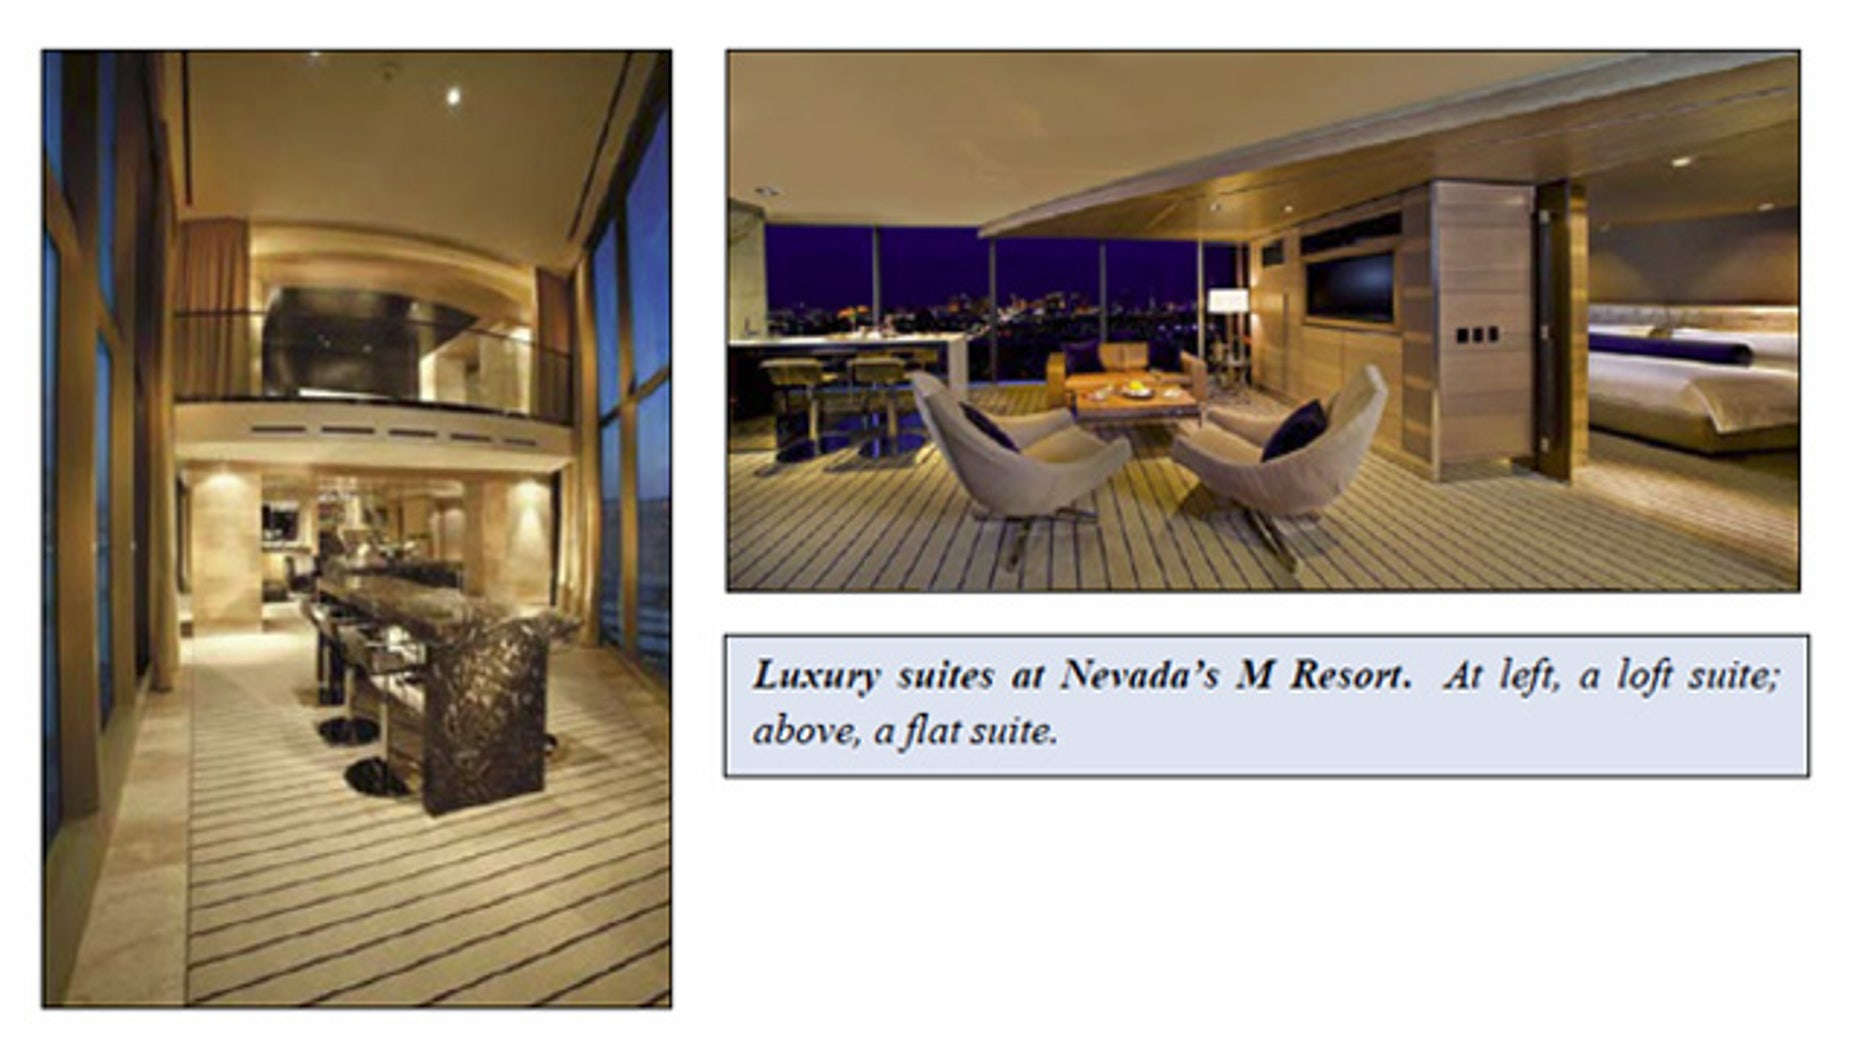 Shown here are suites in the M Resort near Las Vegas.